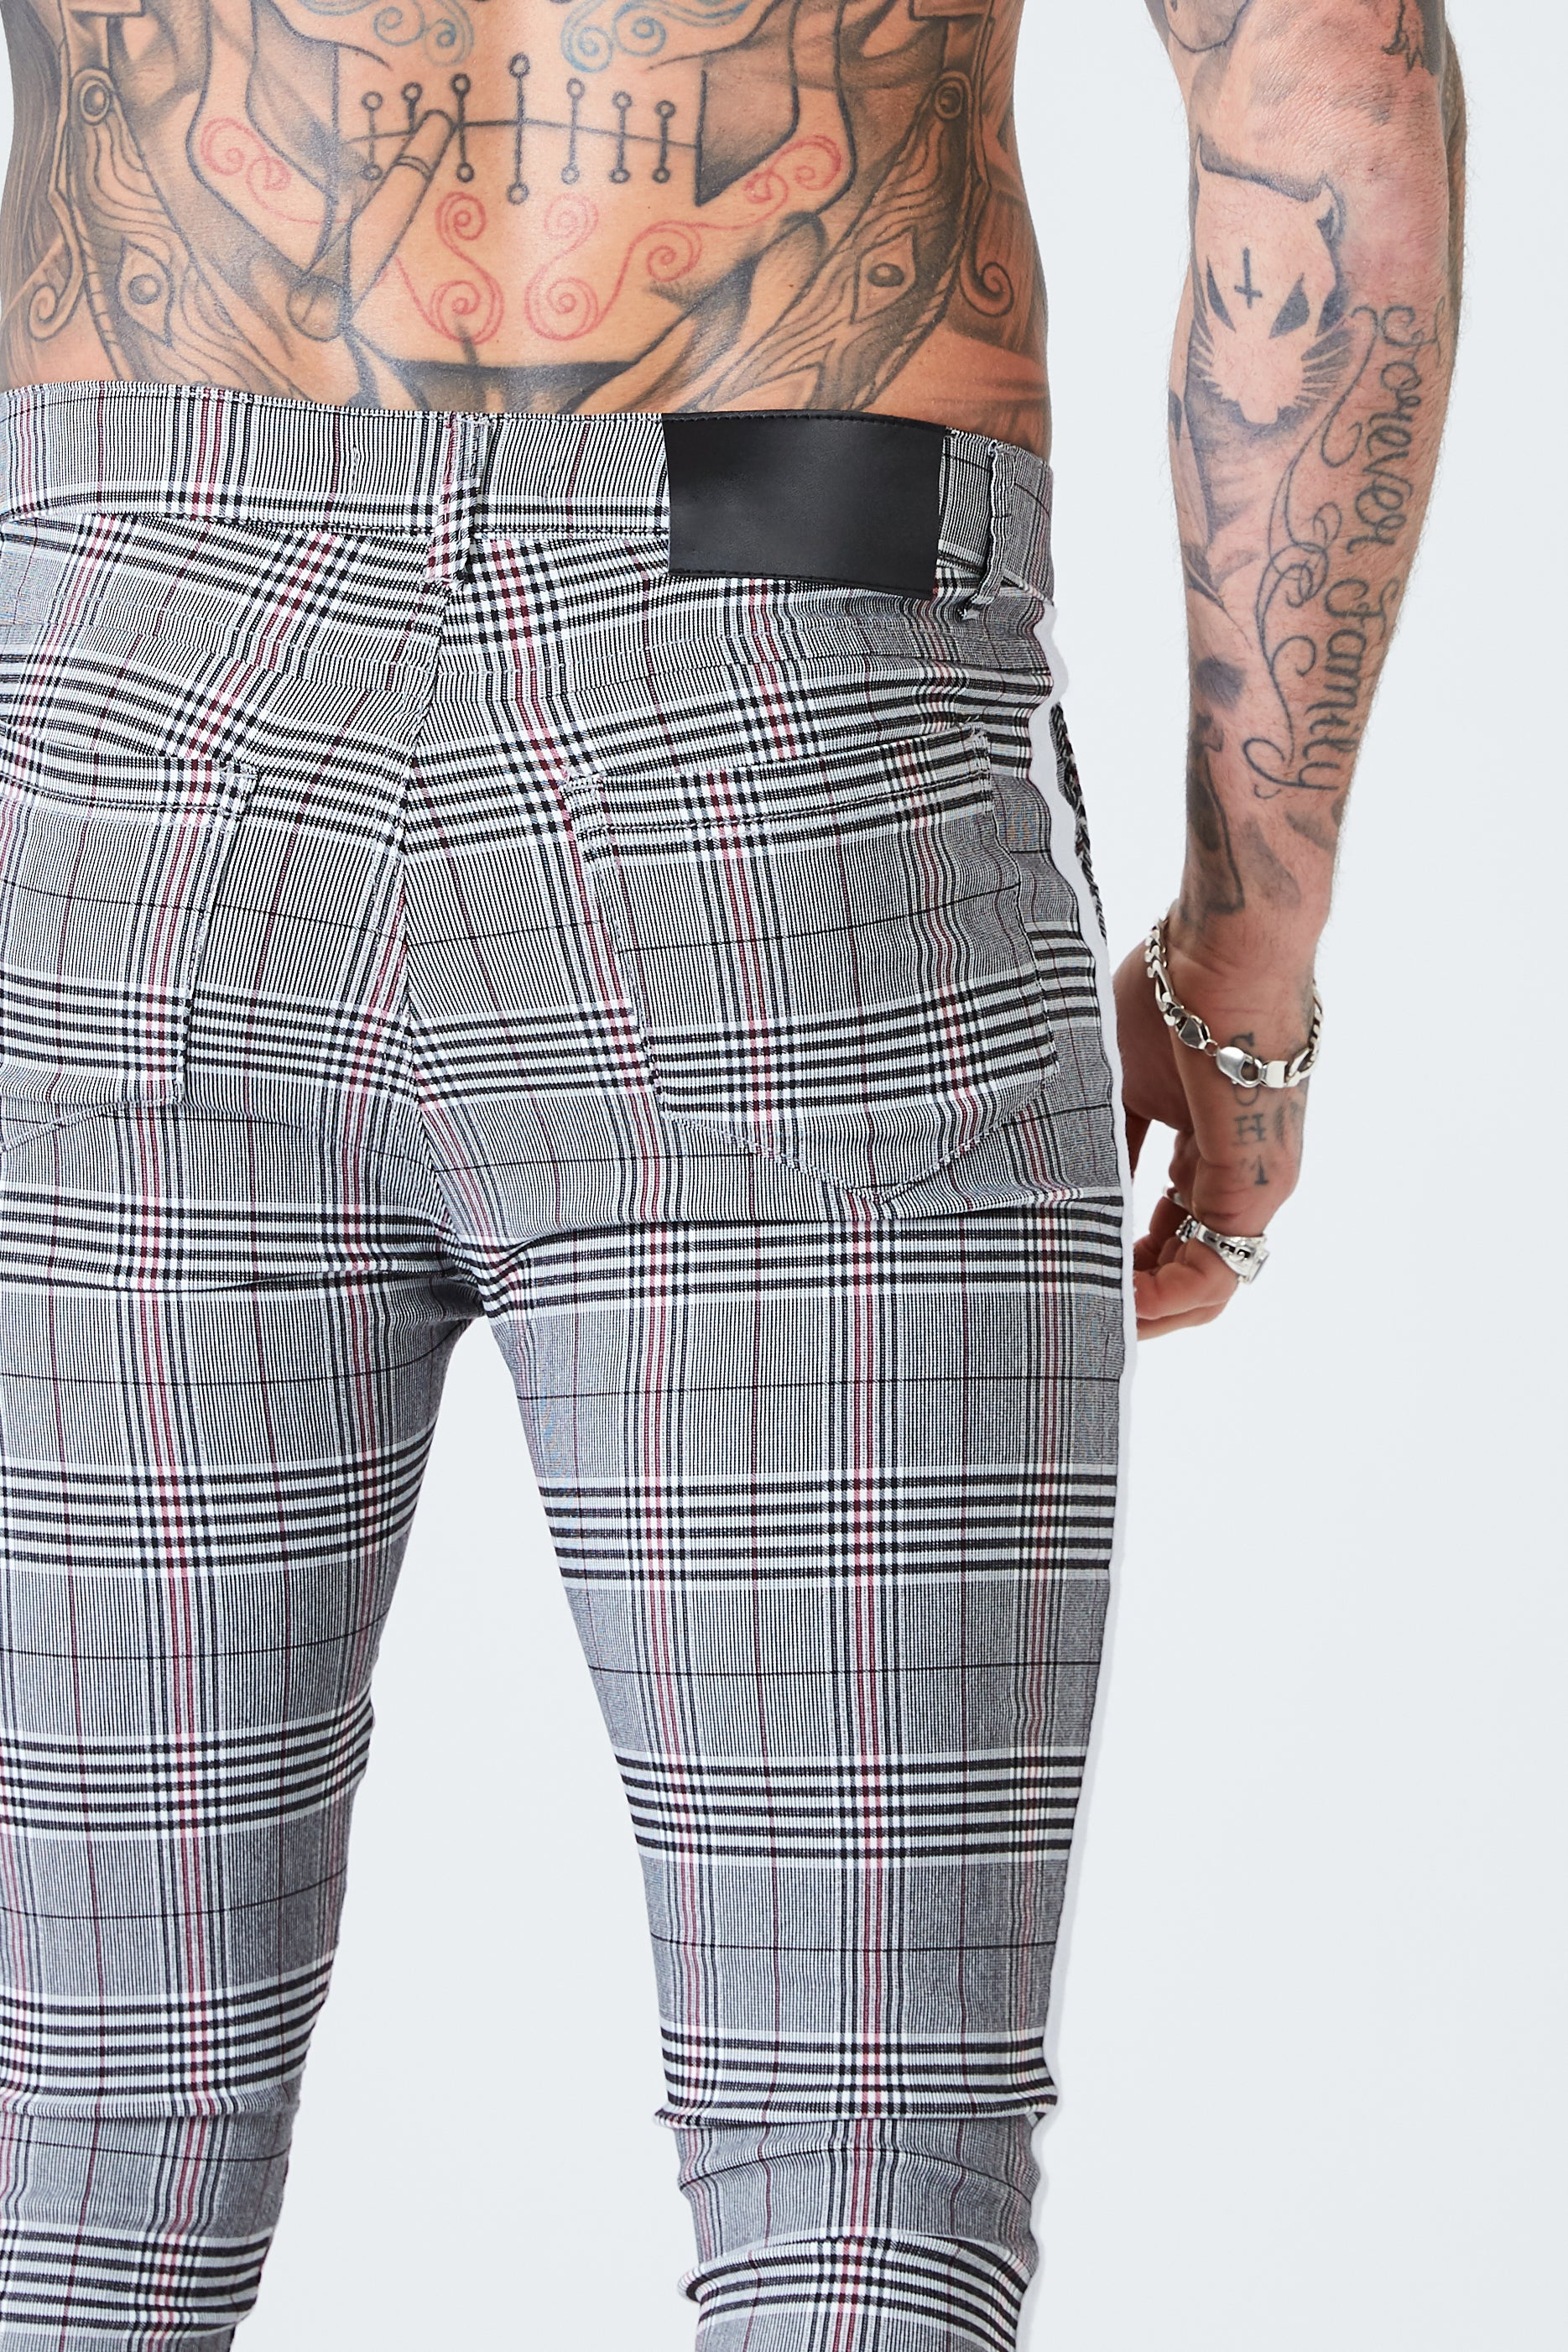 Skinny Check Trousers with White Stripe - Grey - SVPPLY. STUDIOS